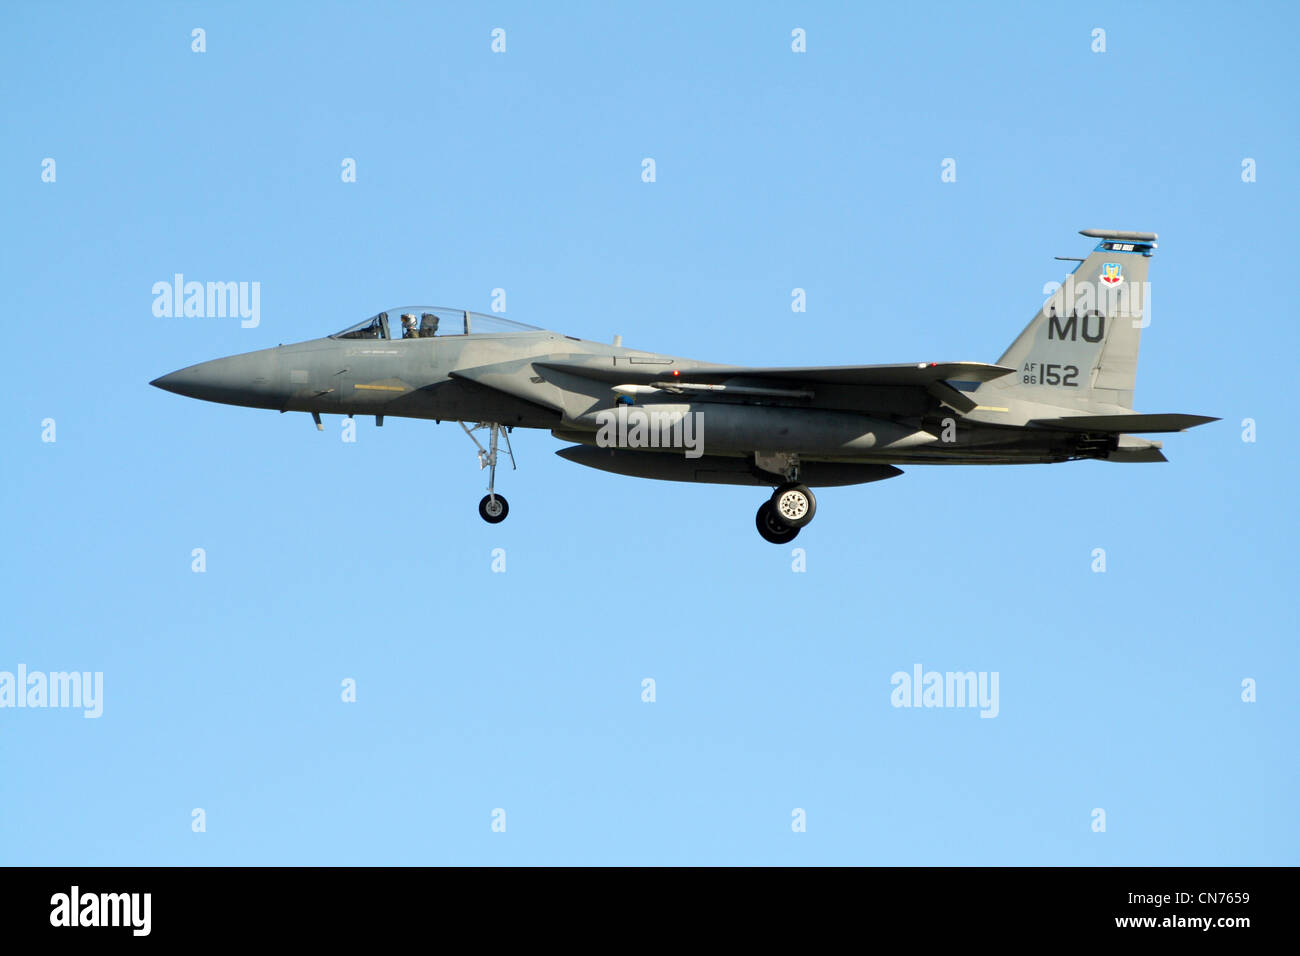 Moody AFB based F-15 Eagle landing at Nellis AFB during exercise Red Flag 2006 - Stock Image